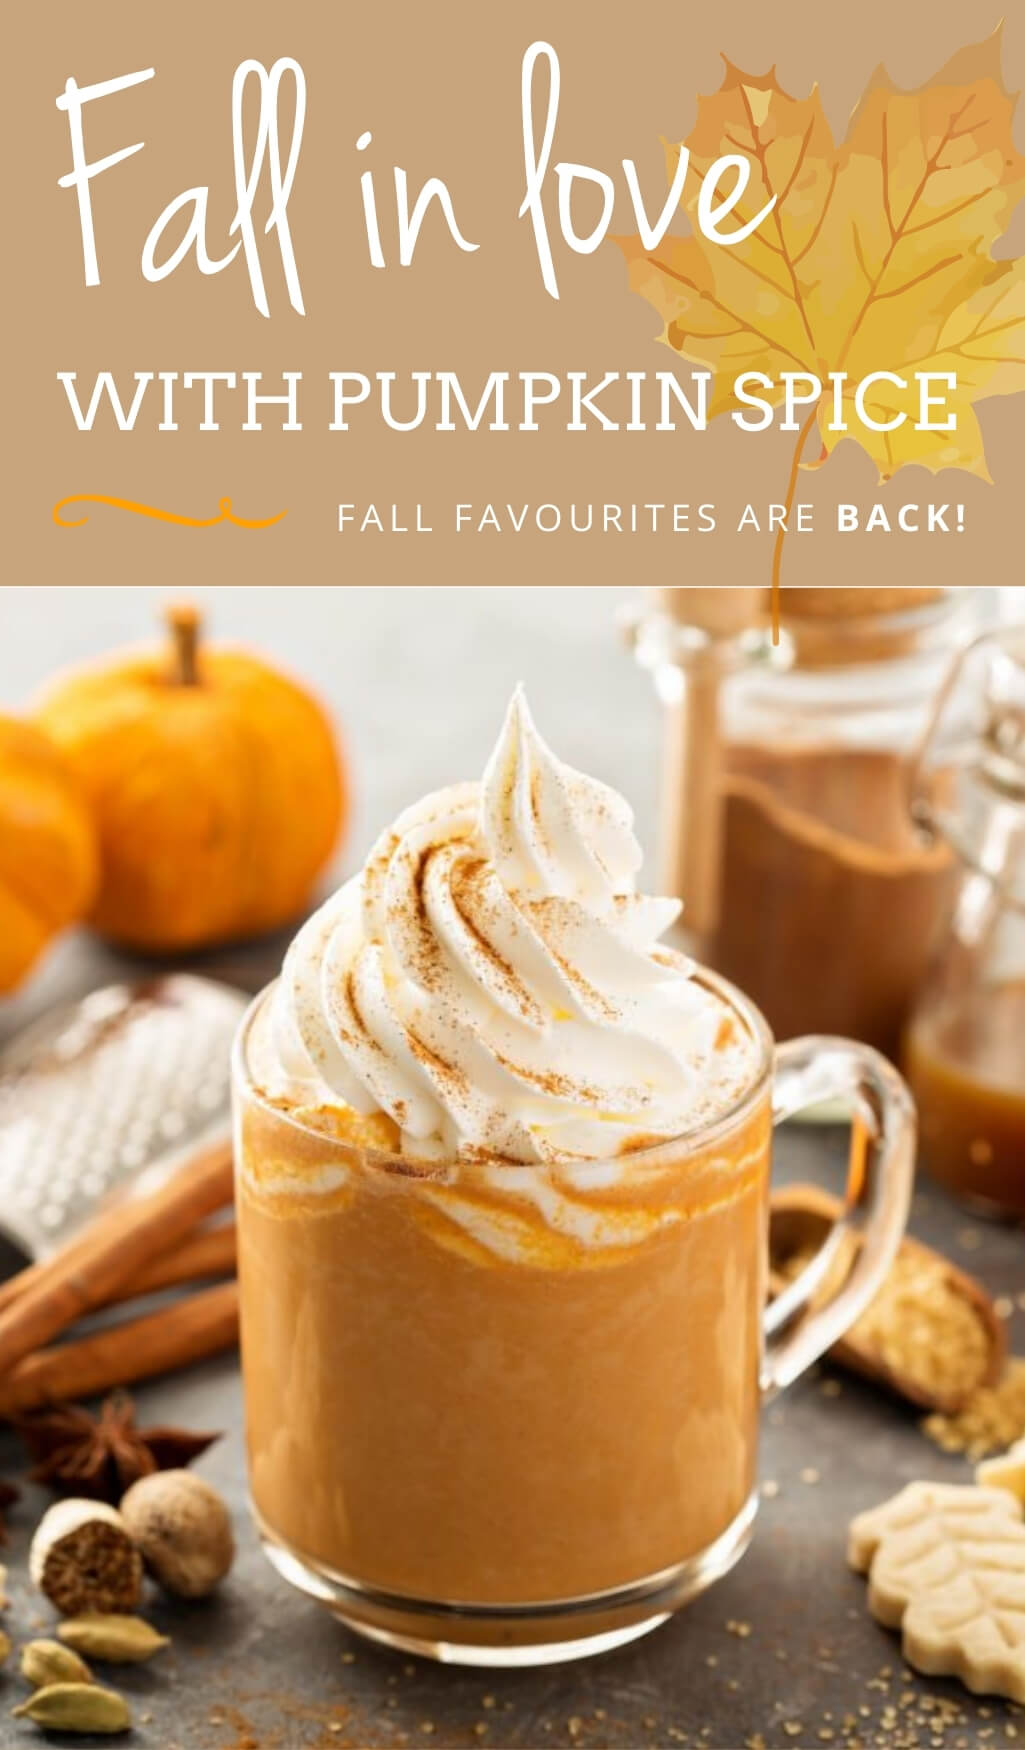 Fall in Love with Pumpkin Spice